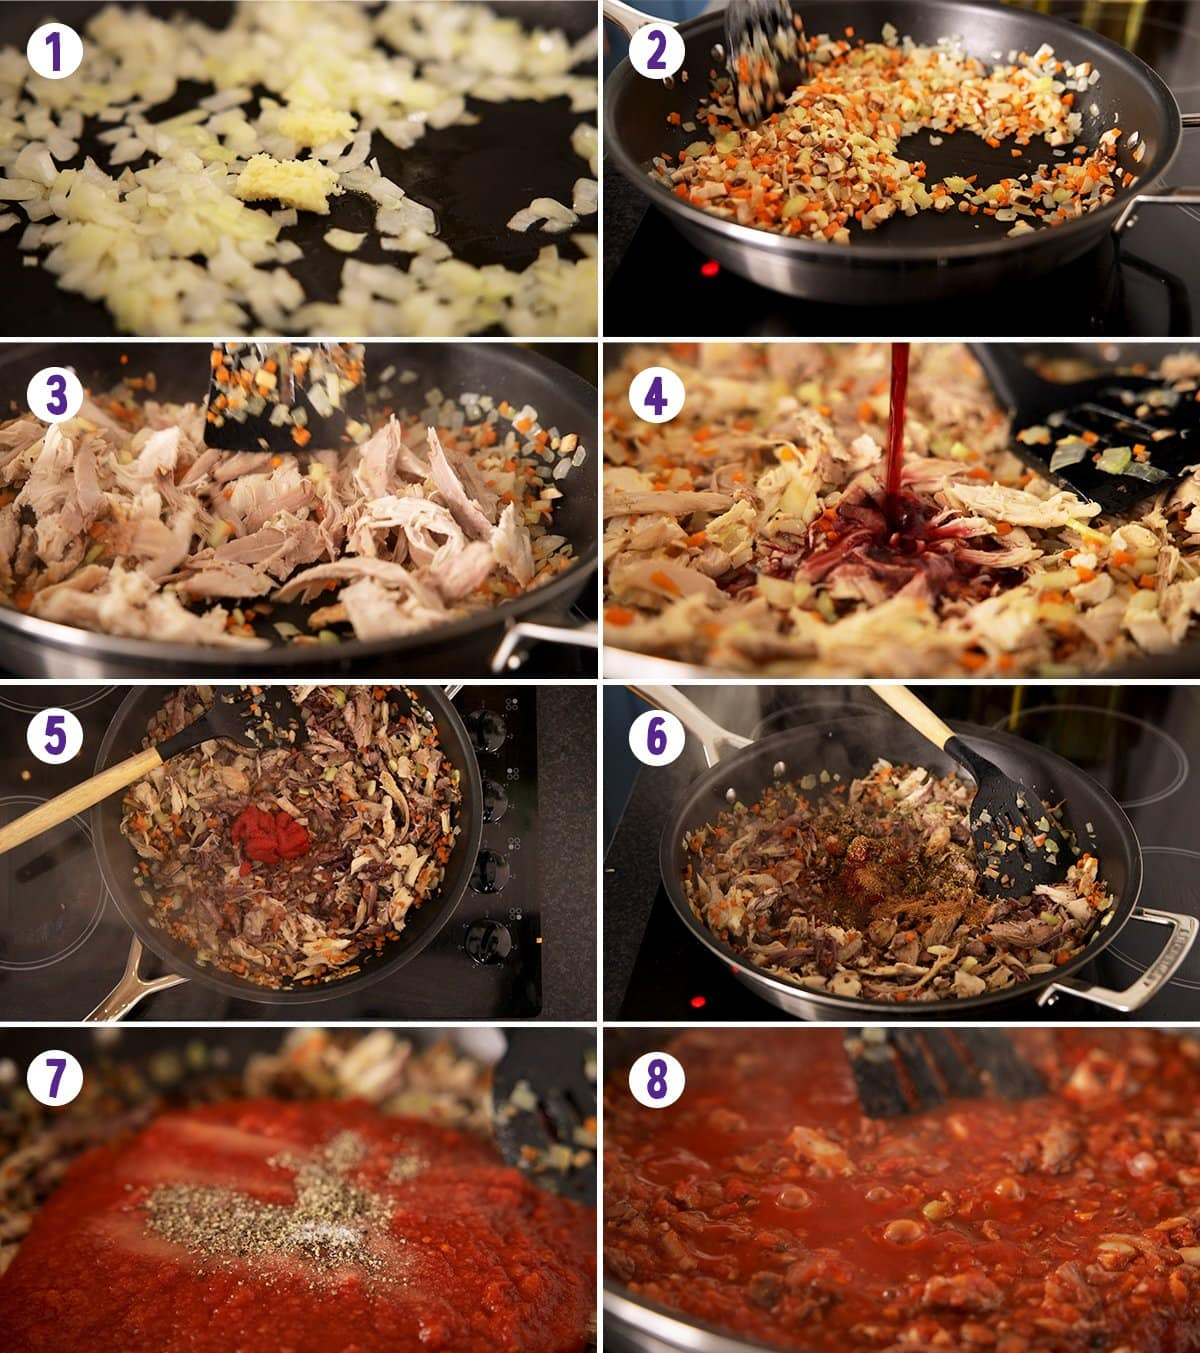 8 image collage showing how to make leftover turkey bolognese